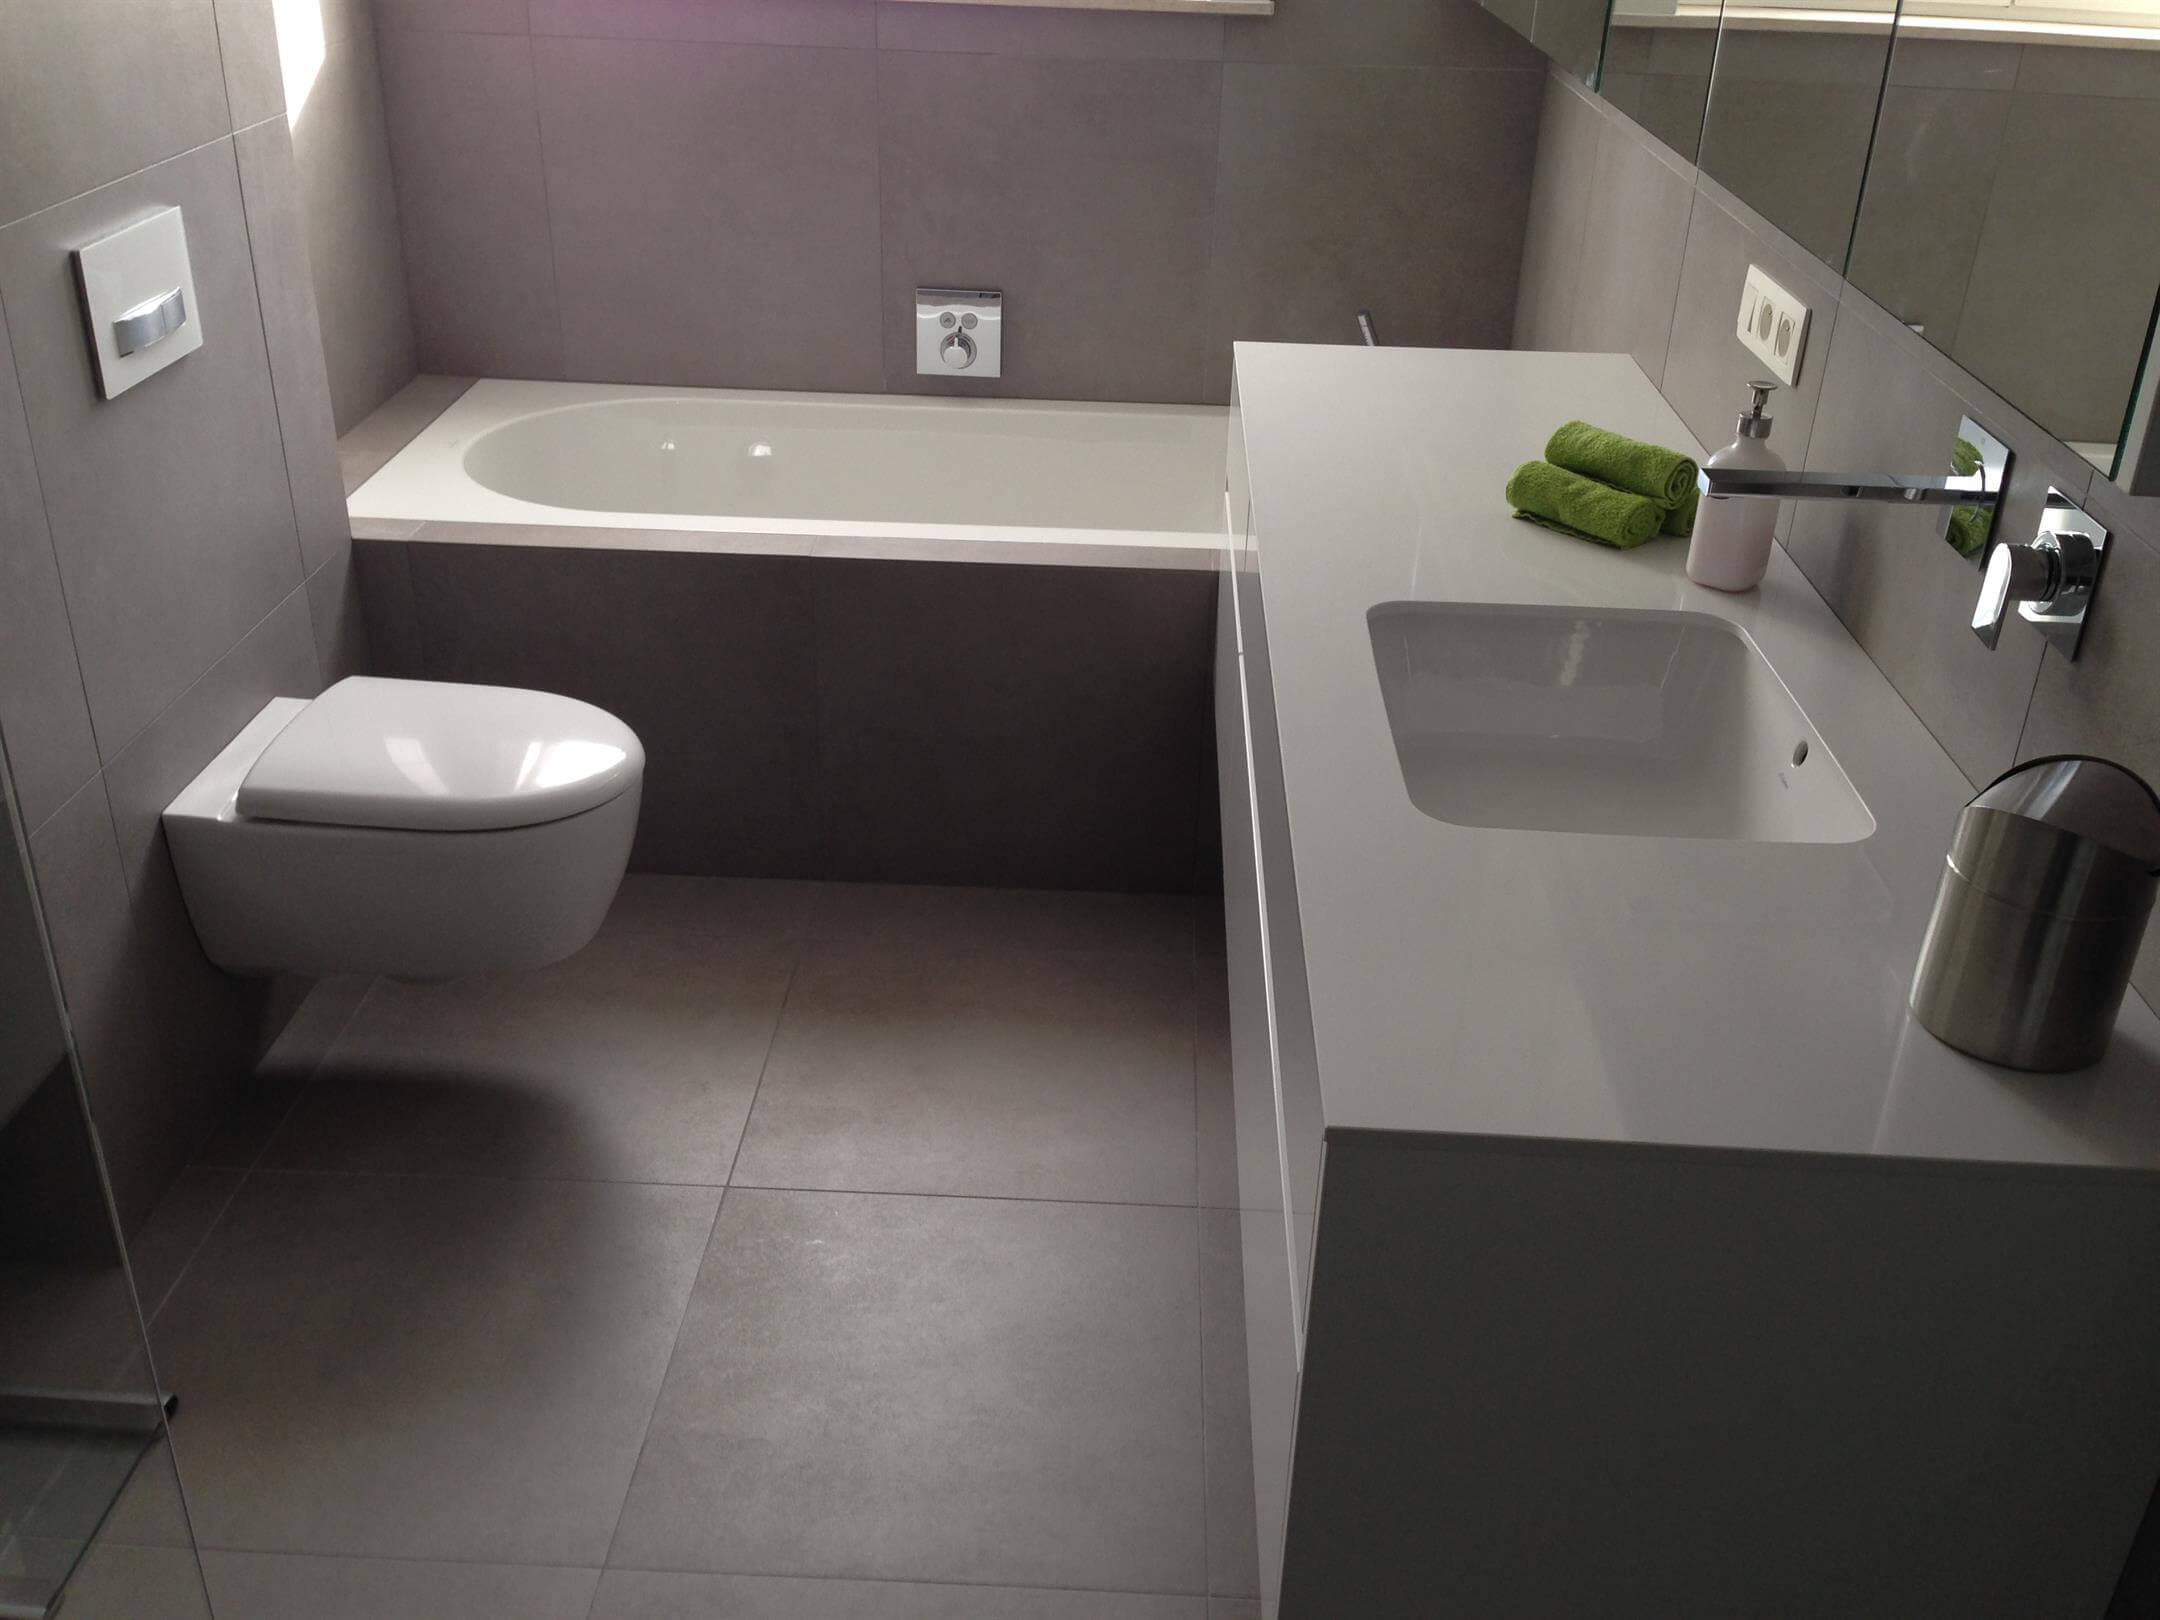 Alpa renovatie renovatieonderneming in brugge projecten - Rustieke wc ...